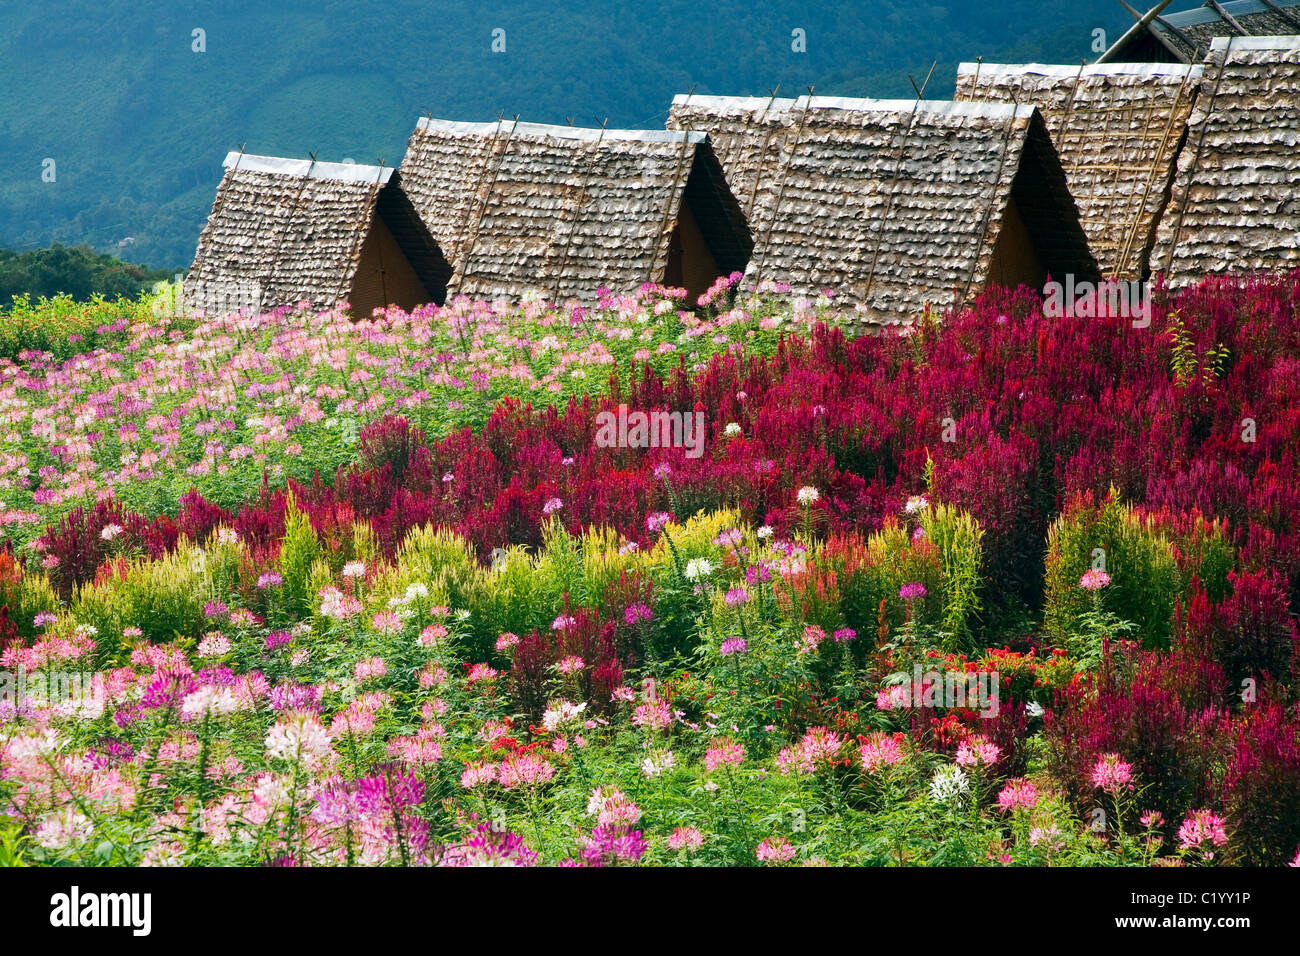 Wildflowers in bloom on the hillslopes of Khun Yuam, Mae Hong Son province, THAILAND. - Stock Image